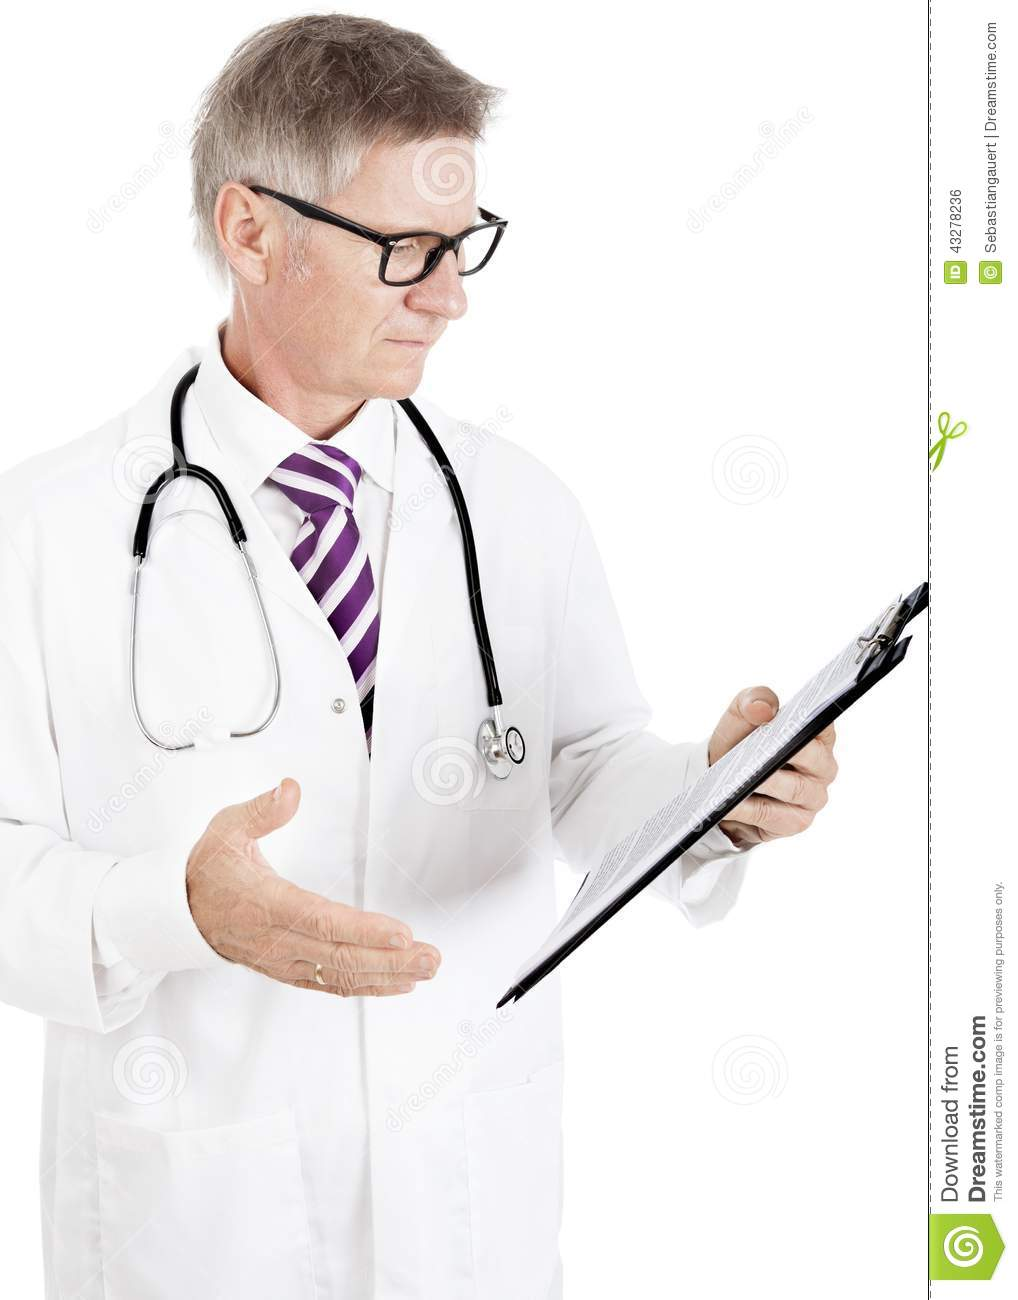 ebook medical technologies and the life world